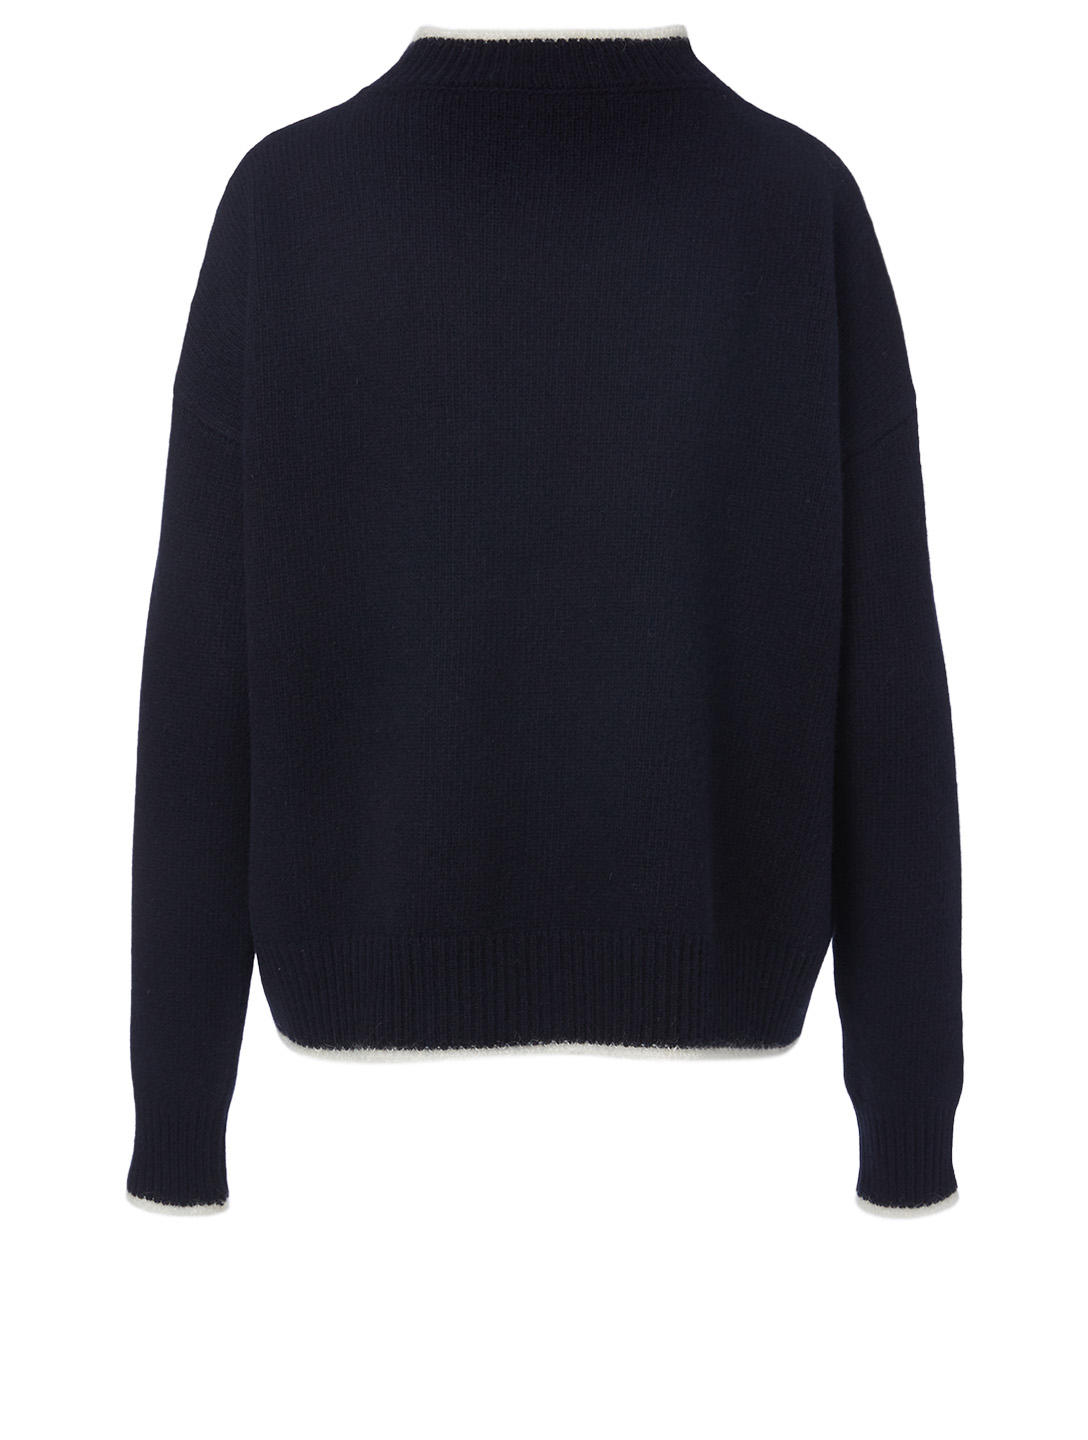 MARNI Wool Crewneck Sweater Women's Blue